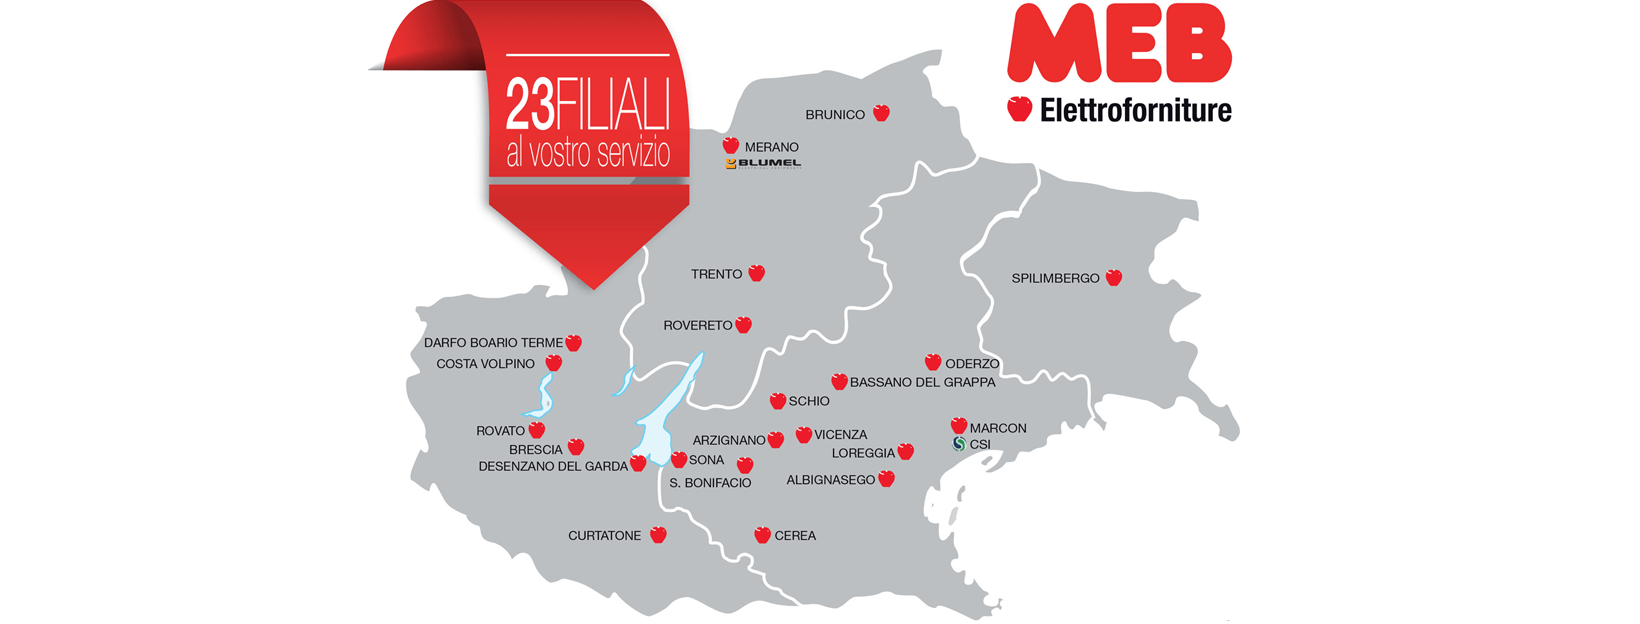 Würth Electrical Wholesale Group (W.EG) expands into Northern Italy via strategic partnership with MEB